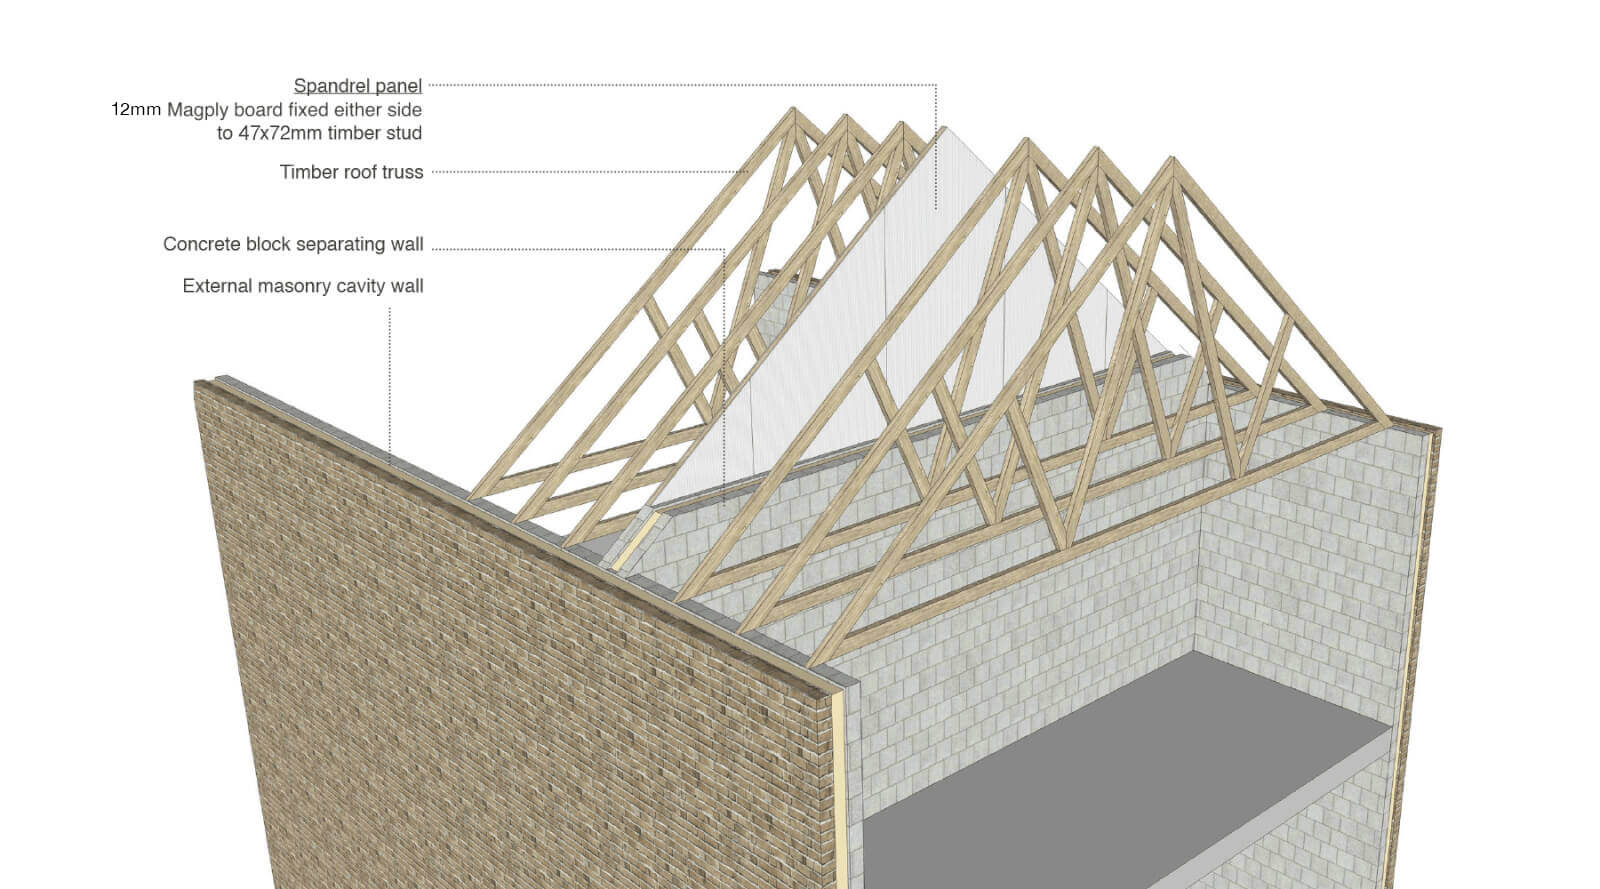 Magply For Use In Spandrel Panels